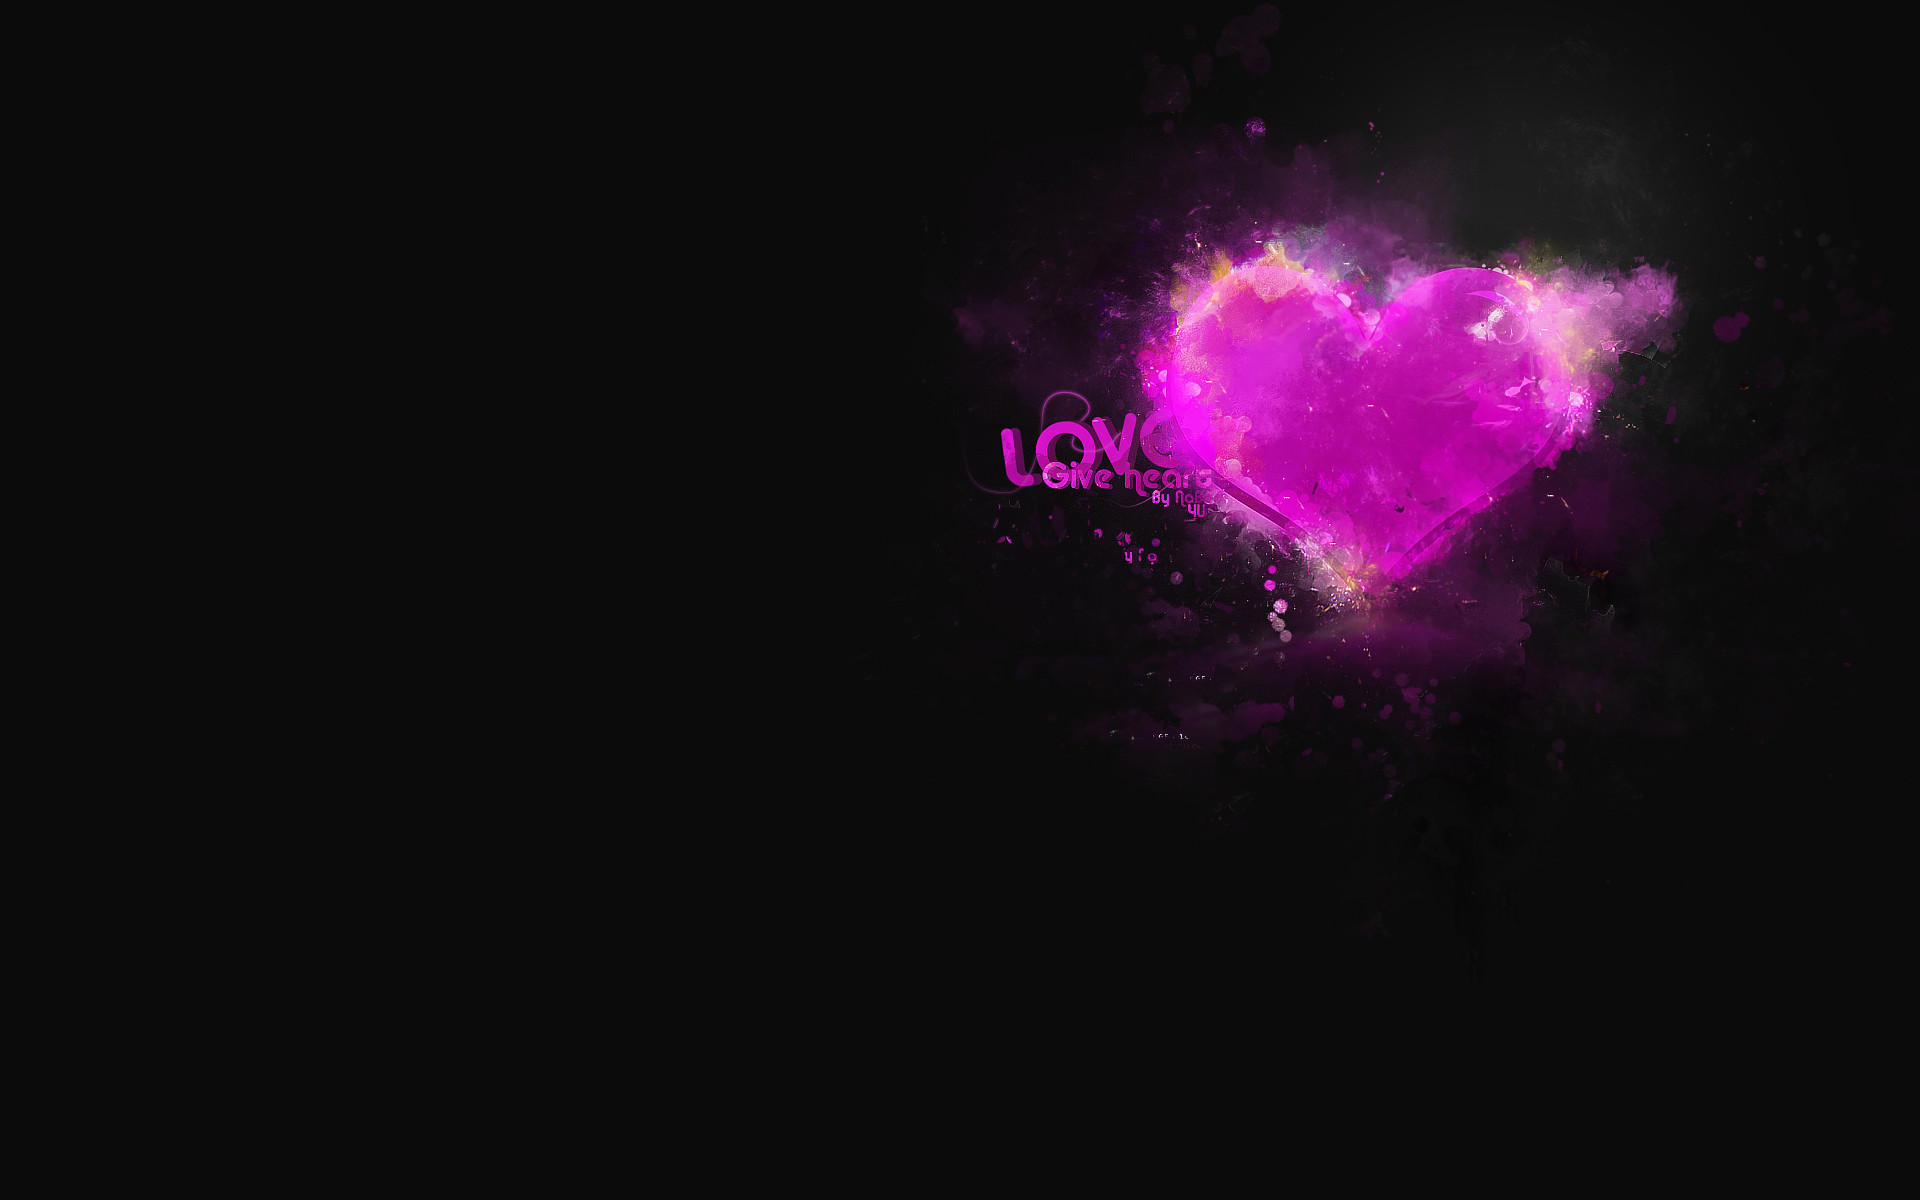 purple heart x 1600 px] – Love/Hearts – Pictures and wallpapers